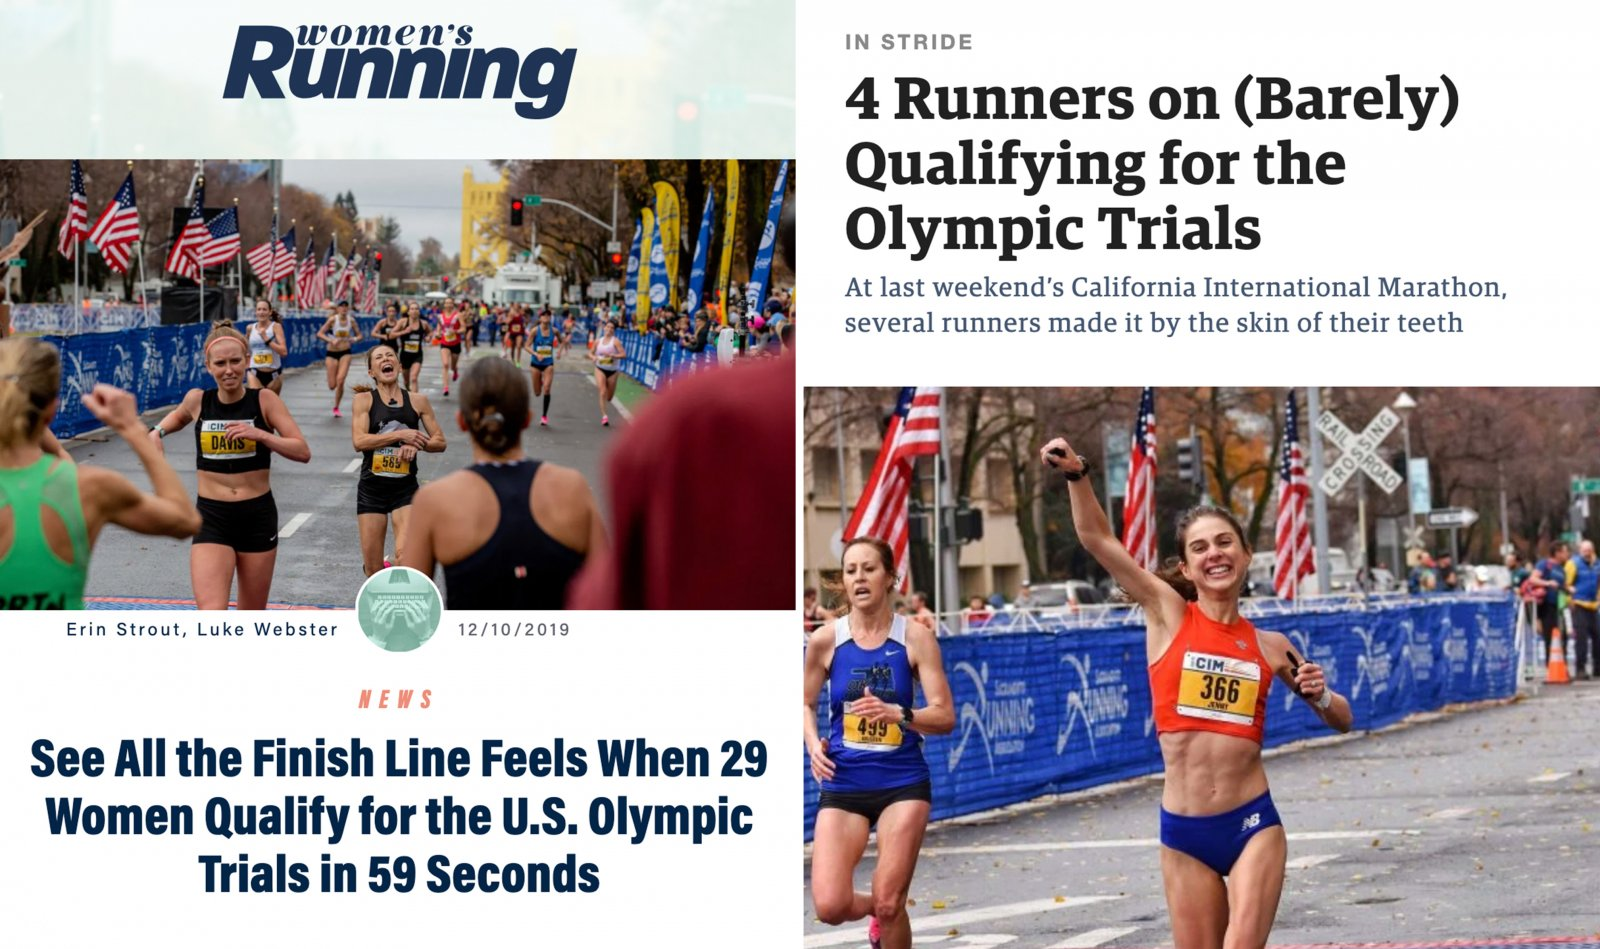 article headlines about the women who barely qualified for the olympic trials